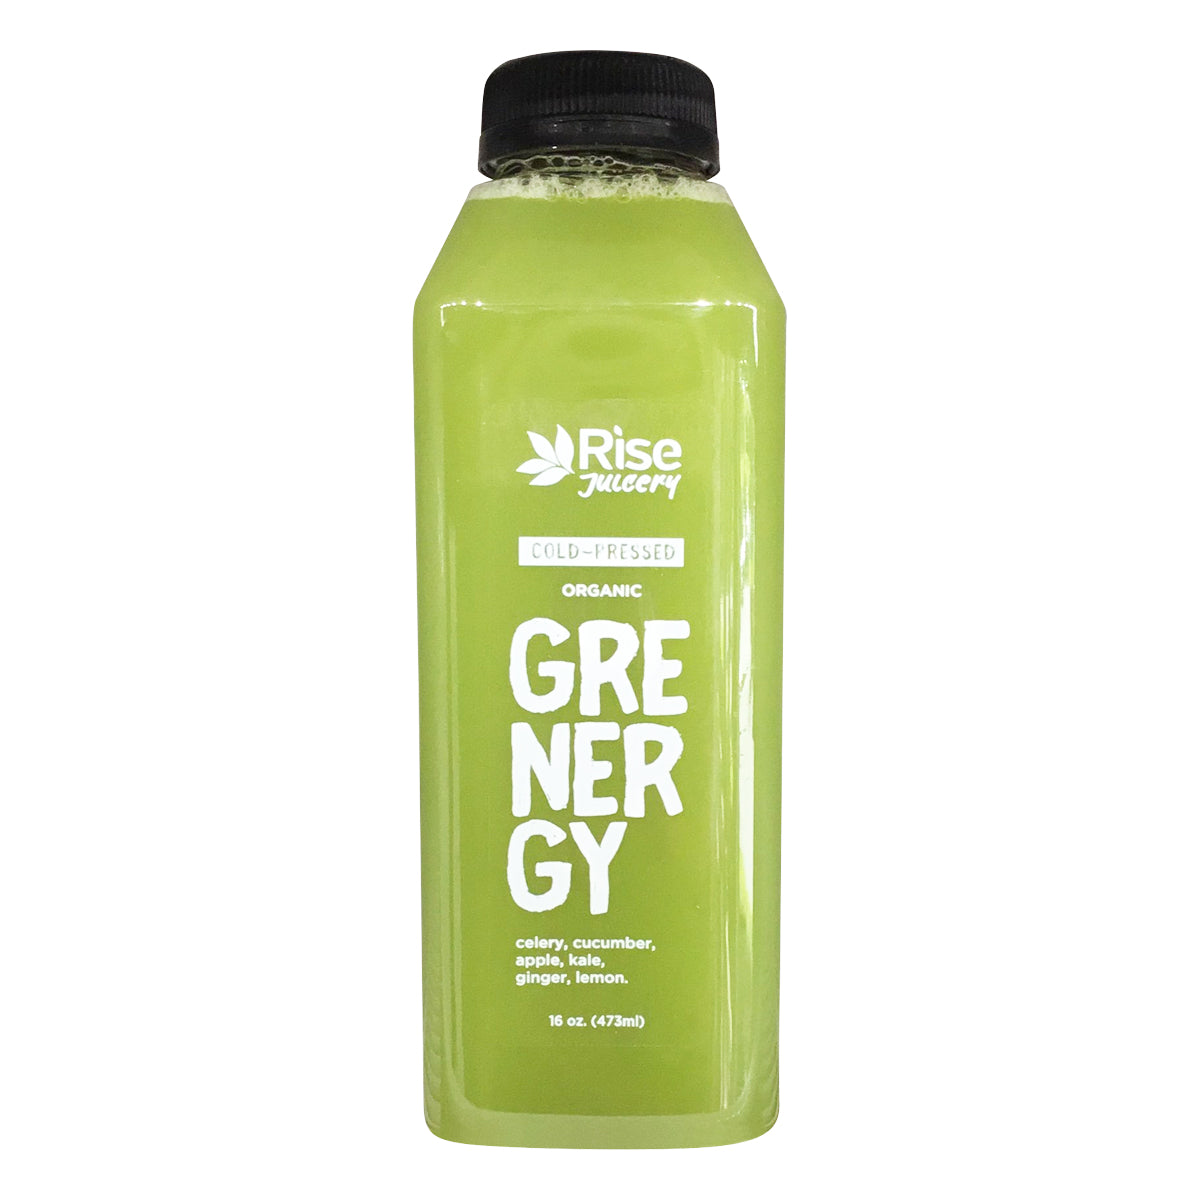 Rise Juicery Grenergy 16 oz